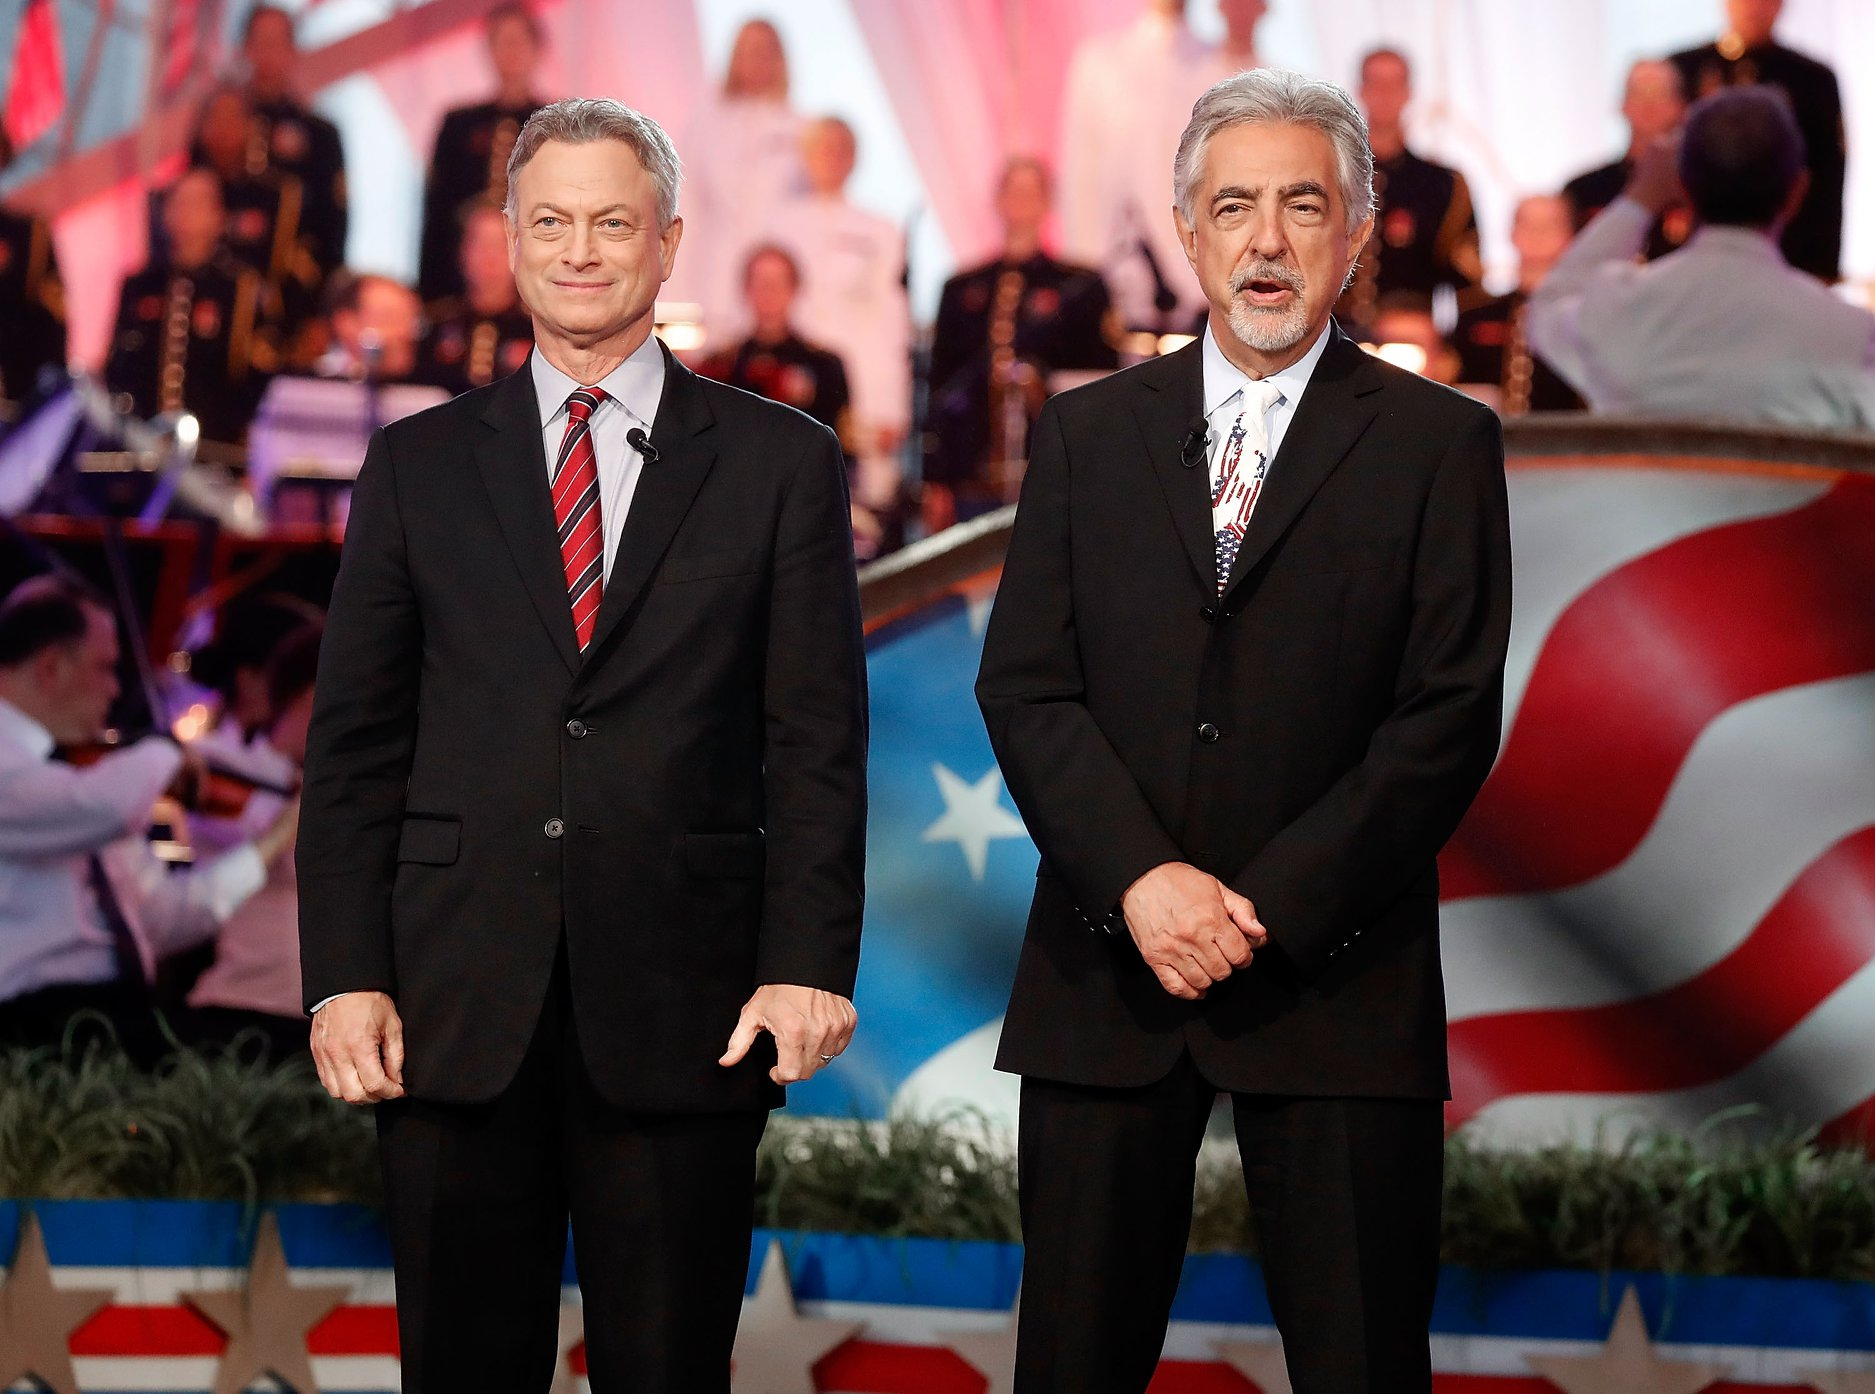 Actors and co-hosts Gary Sinise and Joe Mantegna onstage at the 2018 <em>National Memorial Day Concert</em>.